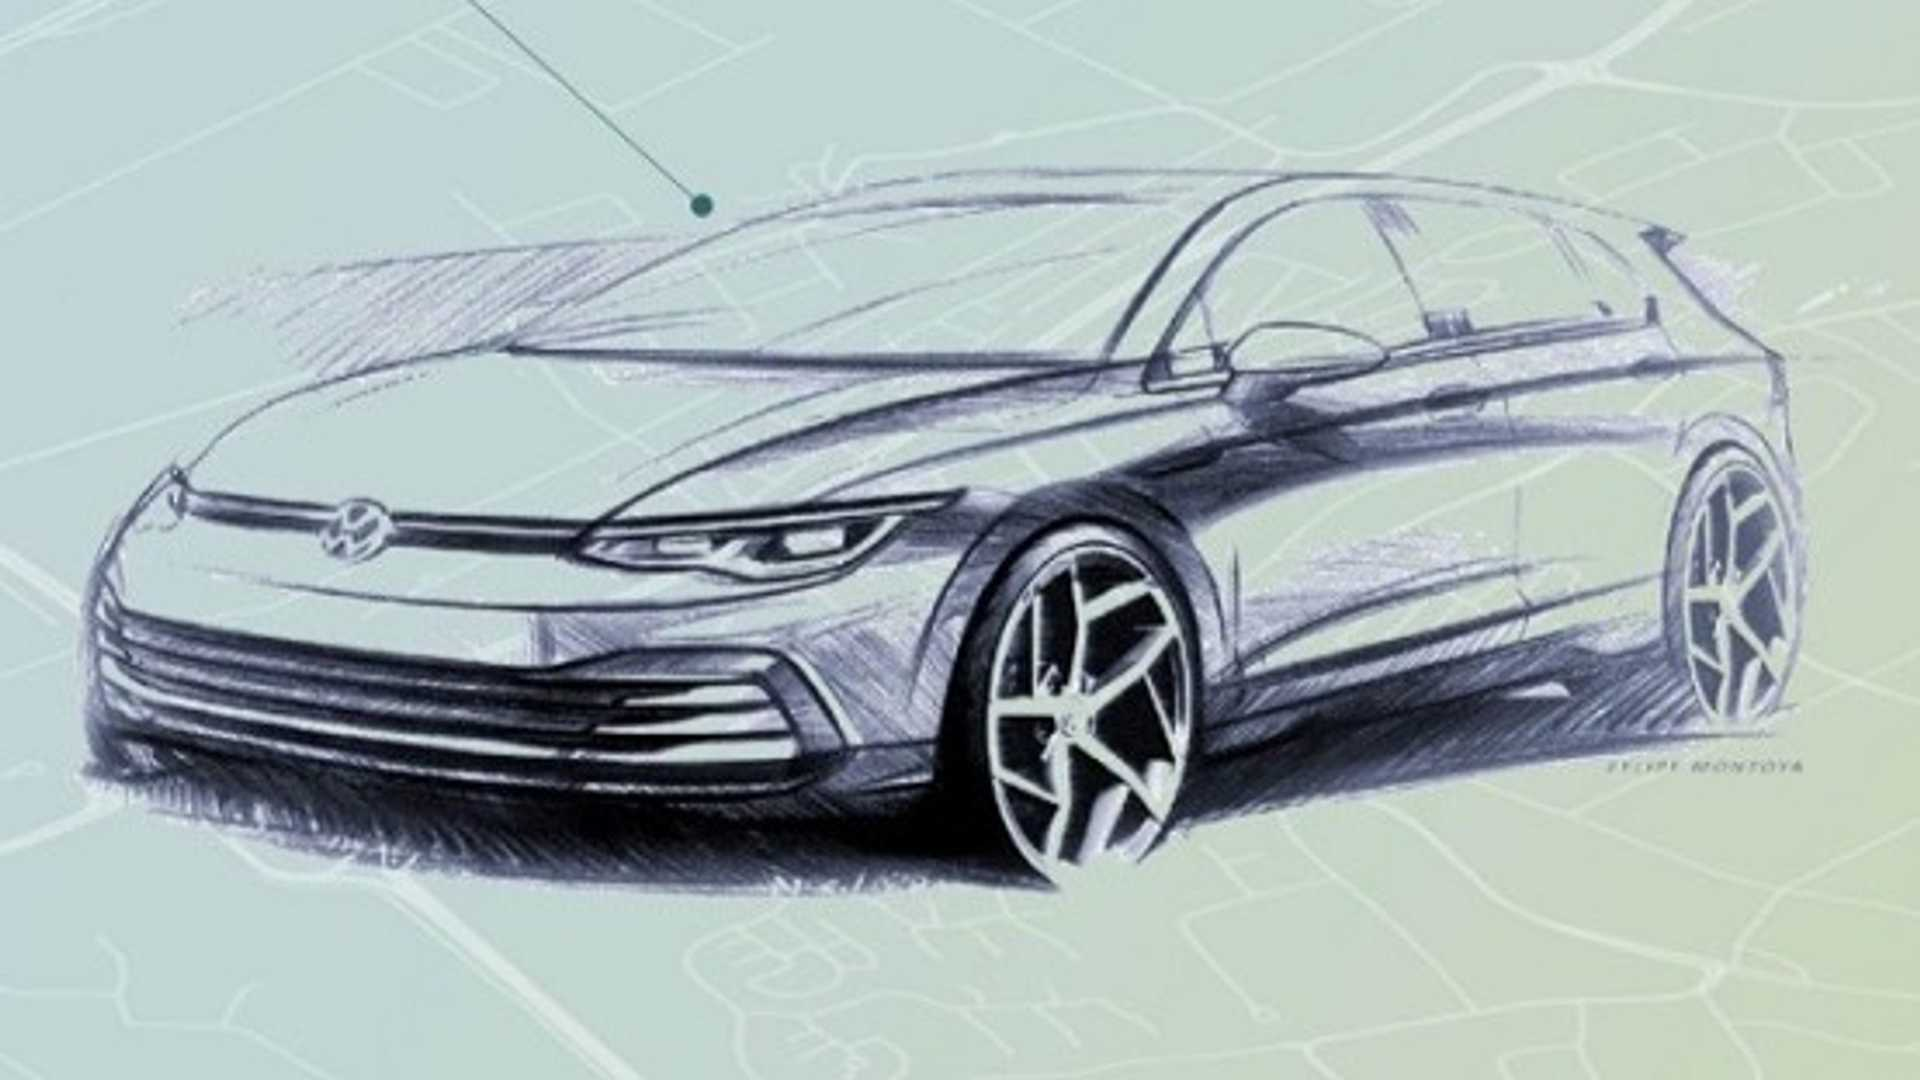 First official pictures showing the body and cabin of the new, 8th-gen Volkswagen Golf have recently appeared on the manufacturer's website